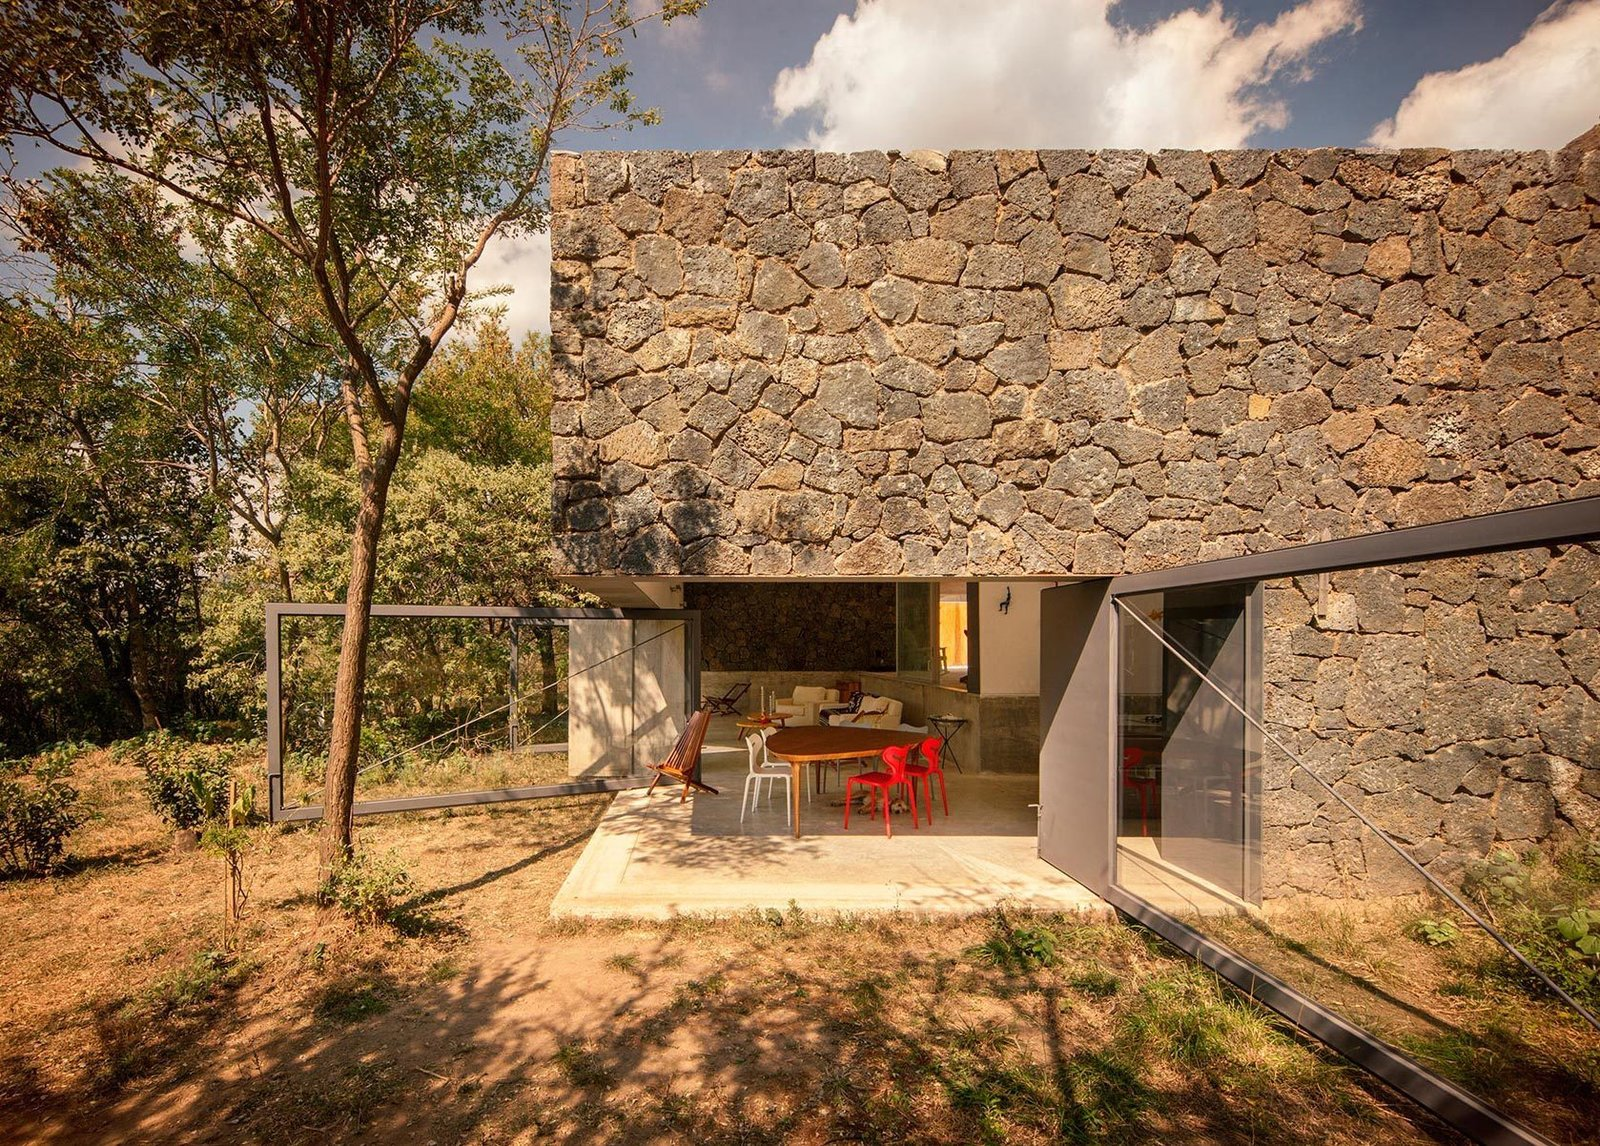 Photo 1 of 11 in 10 Retreats in Mexico For the Modernists Who Love the Outdoors from Casa Meztitla